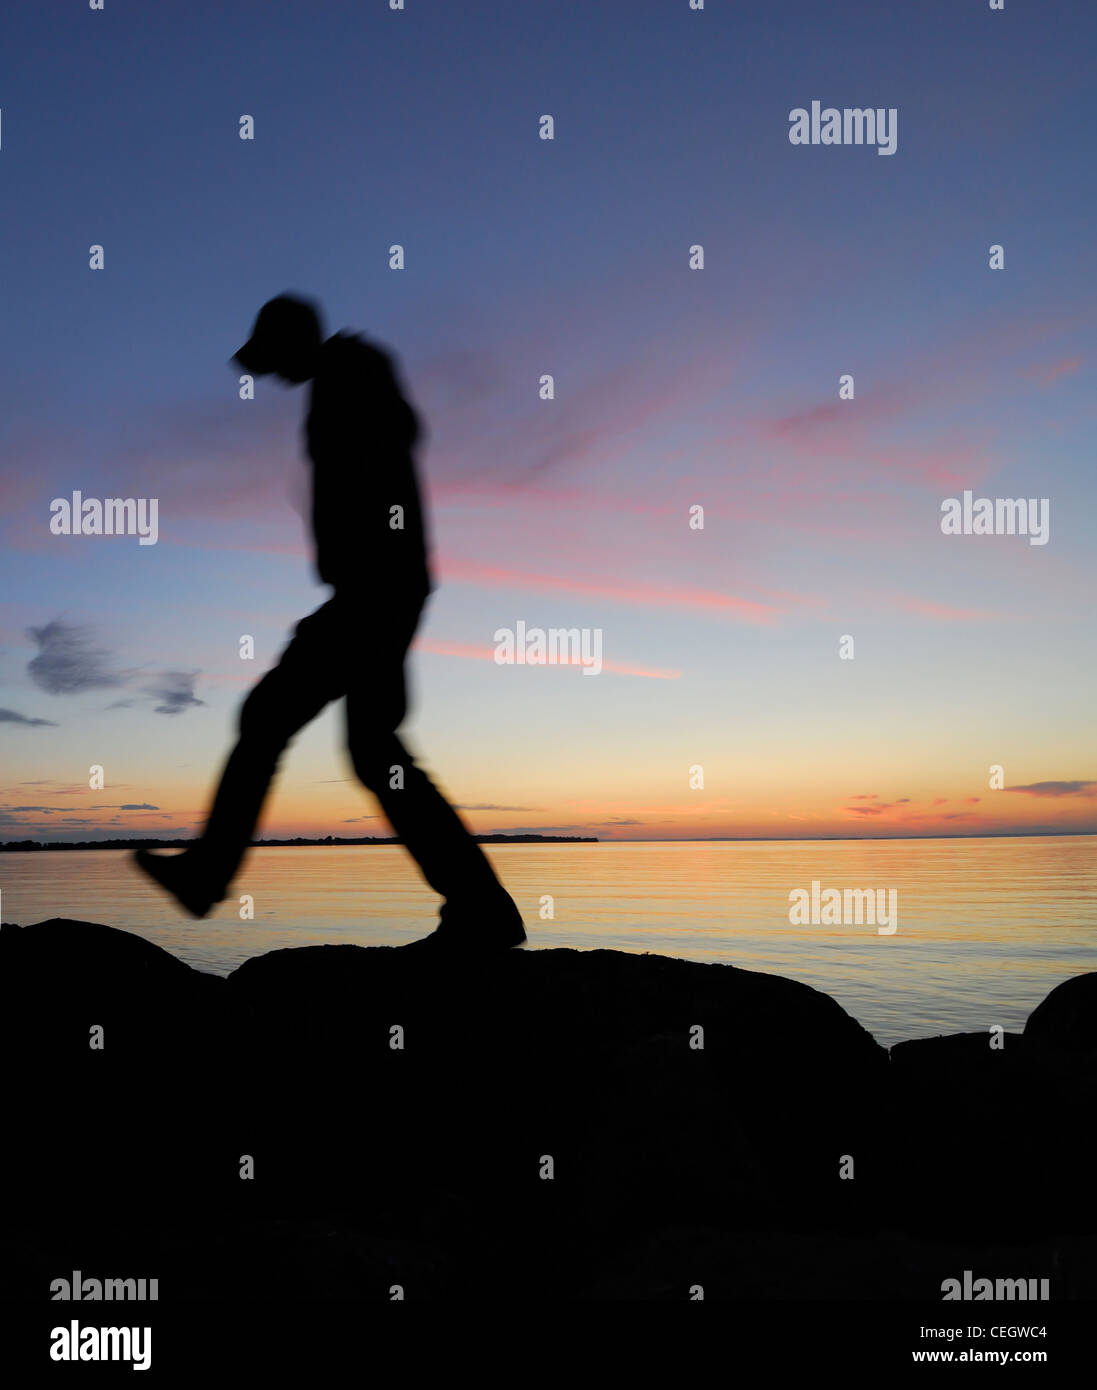 Silhouette of man walking by a lake at night - Stock Image